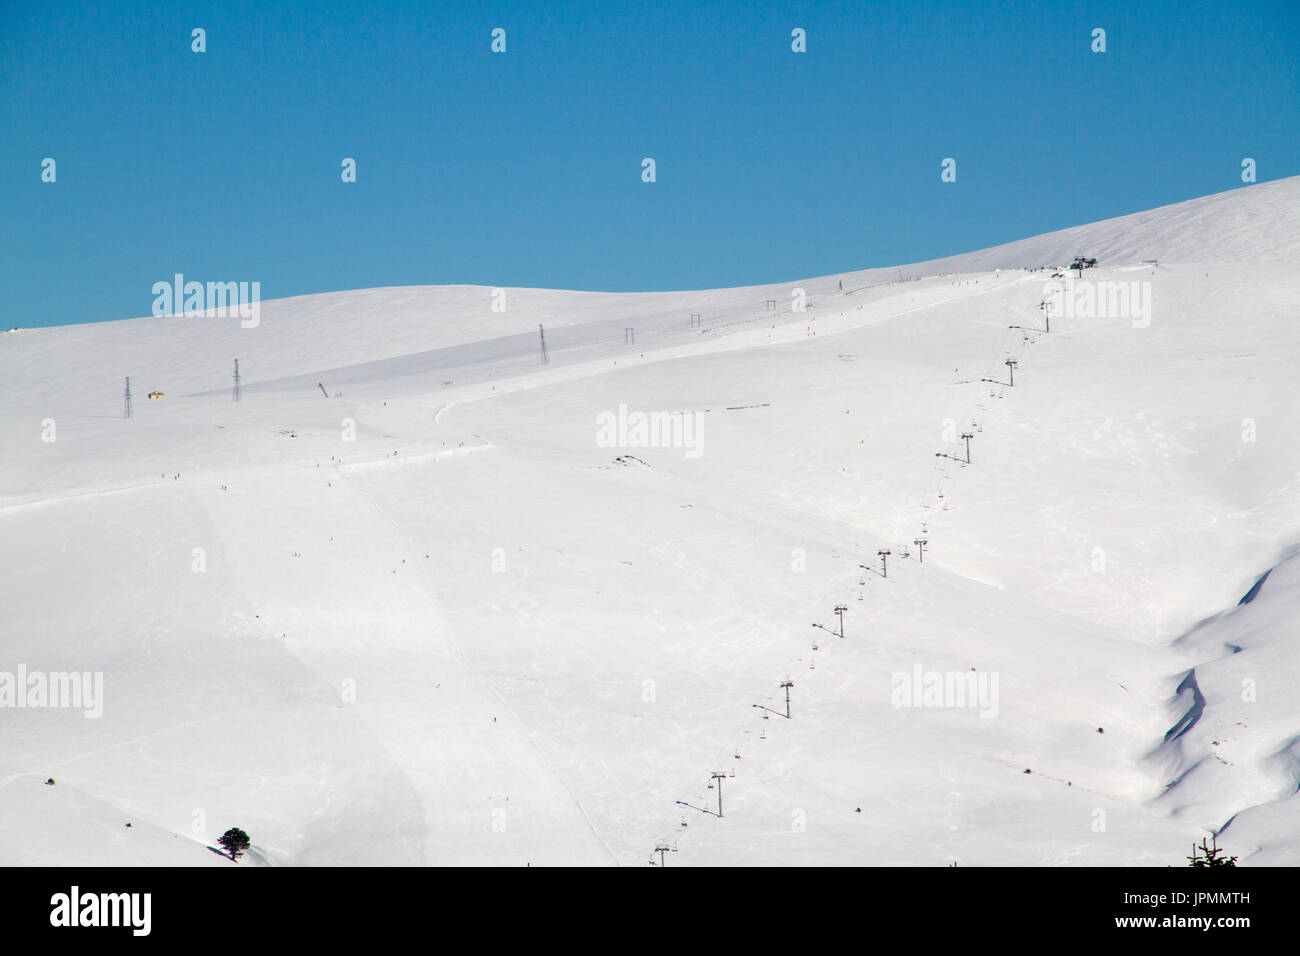 Ski tracks on the background of snowy mountains and blue sky - Stock Image